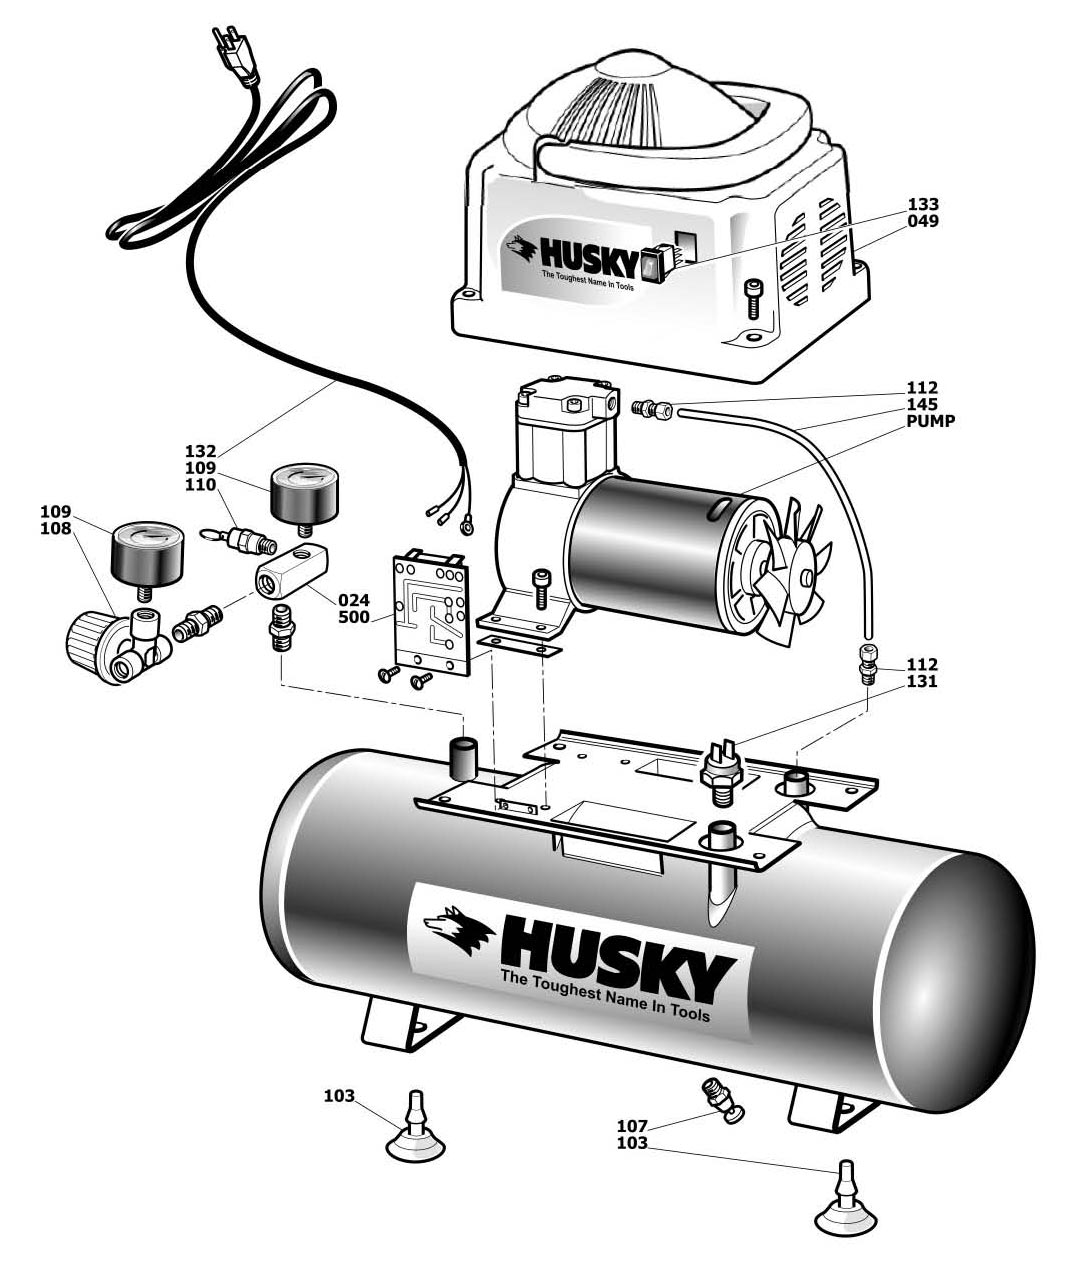 Husky 60 Gallon Air Compressor Wiring Solutions 220 110 Diagram Pressure Switch